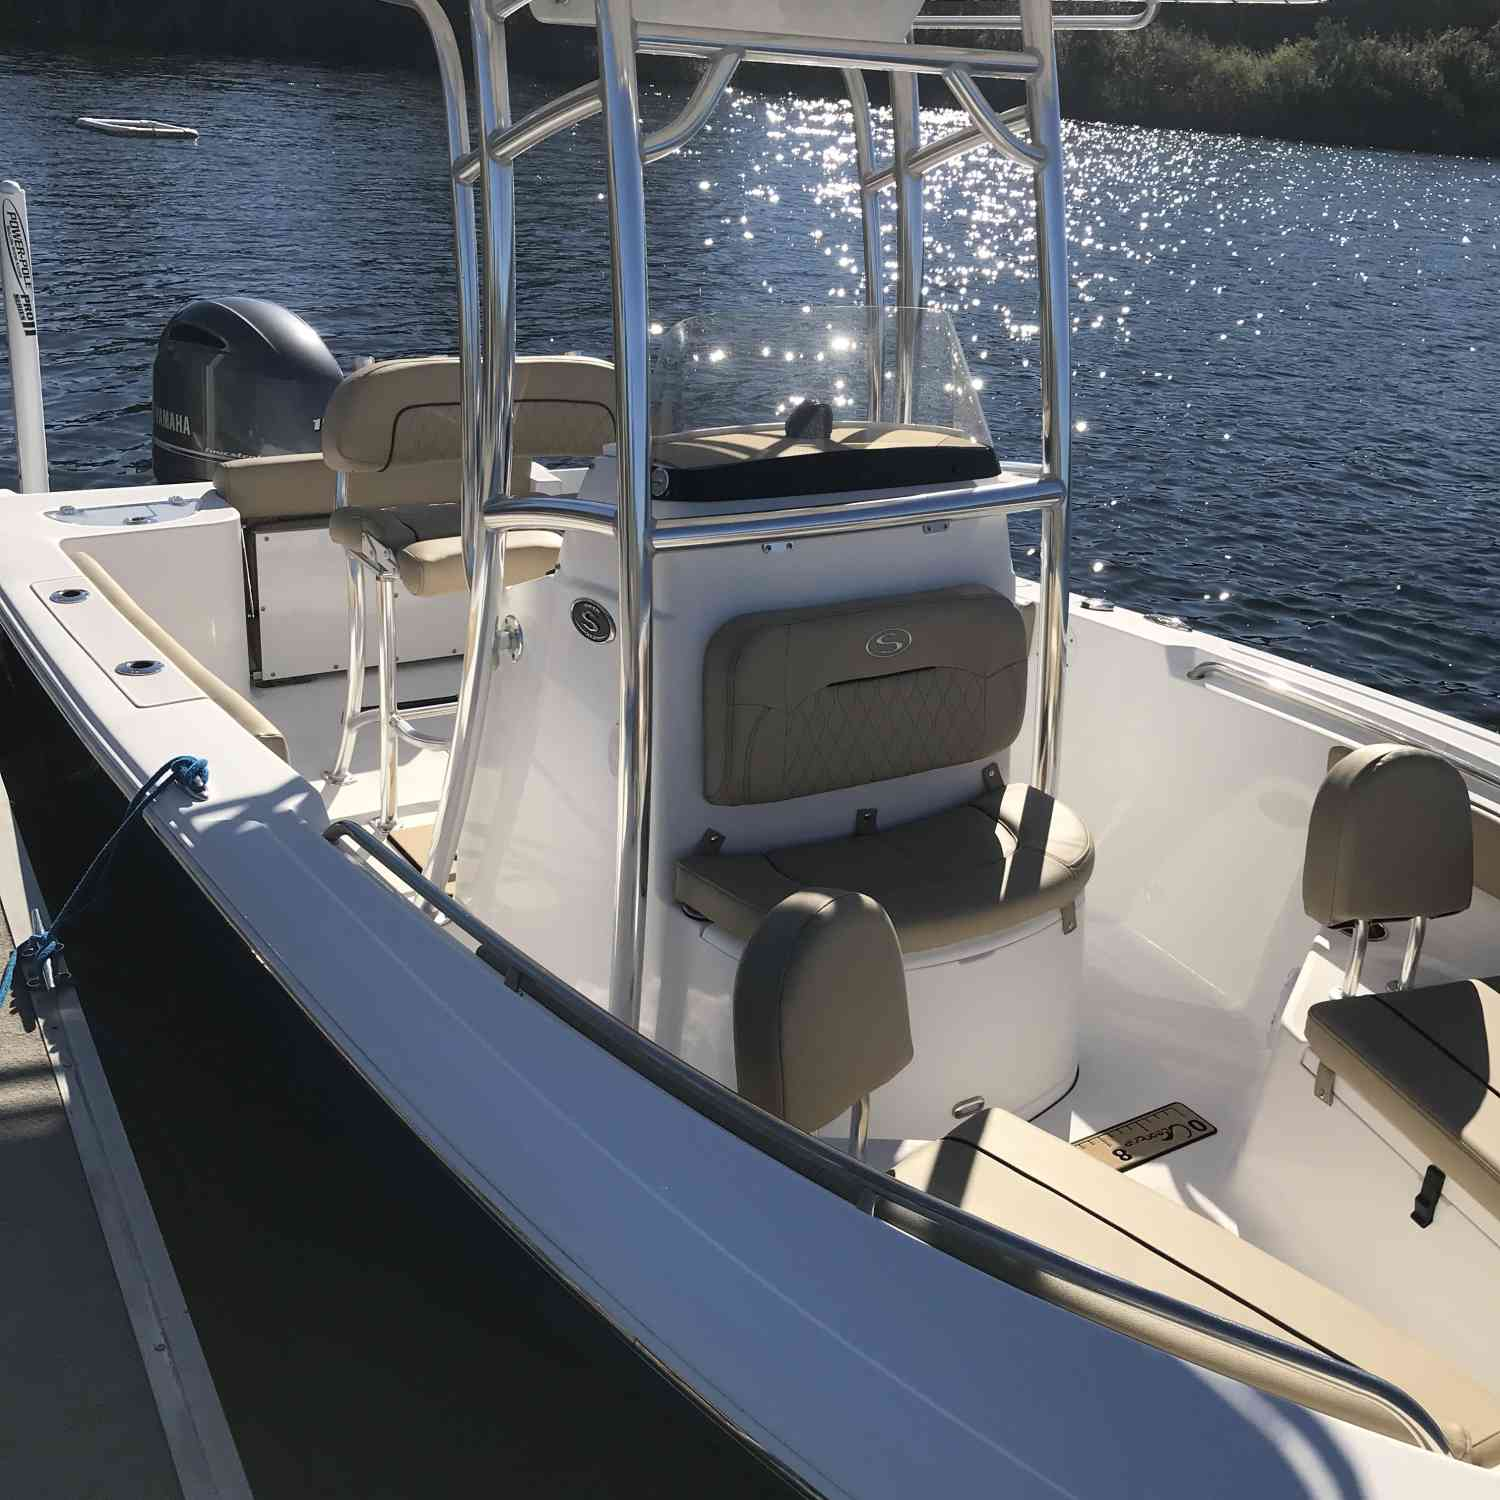 Title: Ready for a day on the Water - On board their Sportsman Open 212 Center Console - Location: Tampa, Fl. Participating in the Photo Contest #SportsmanFebruary2019